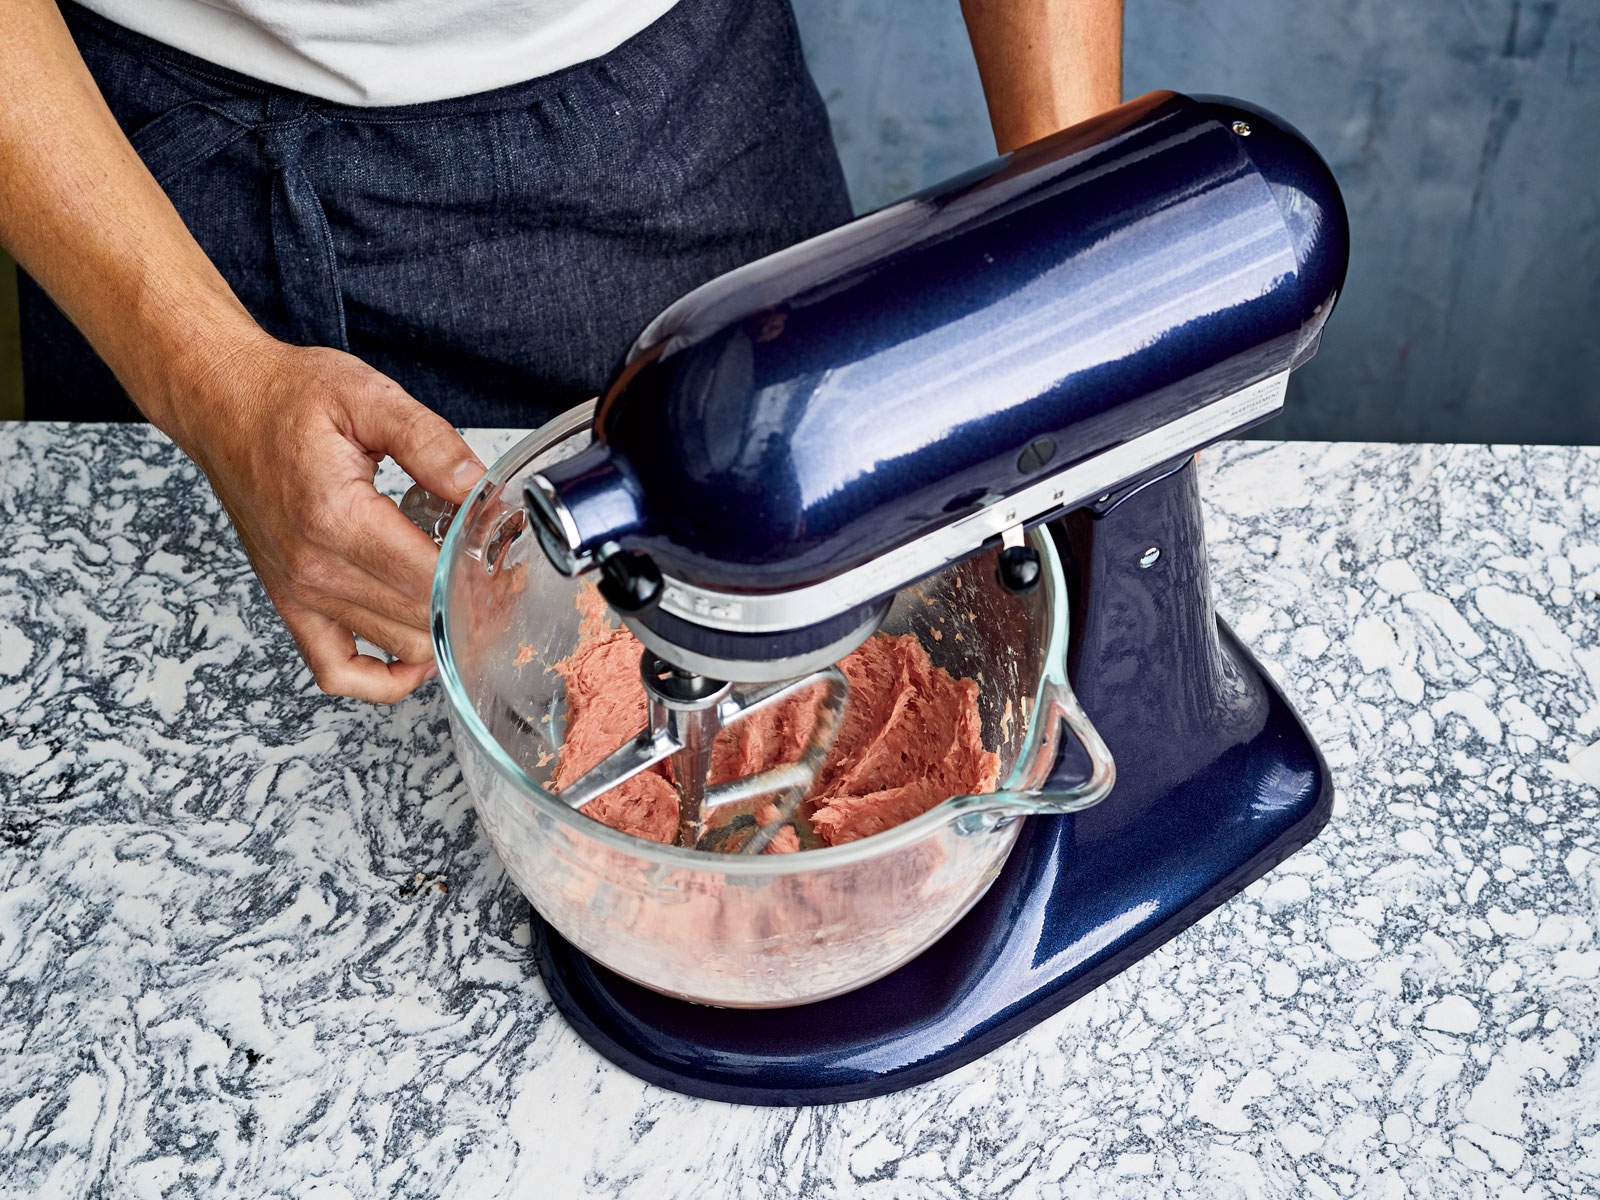 How to Grind Meat at Home